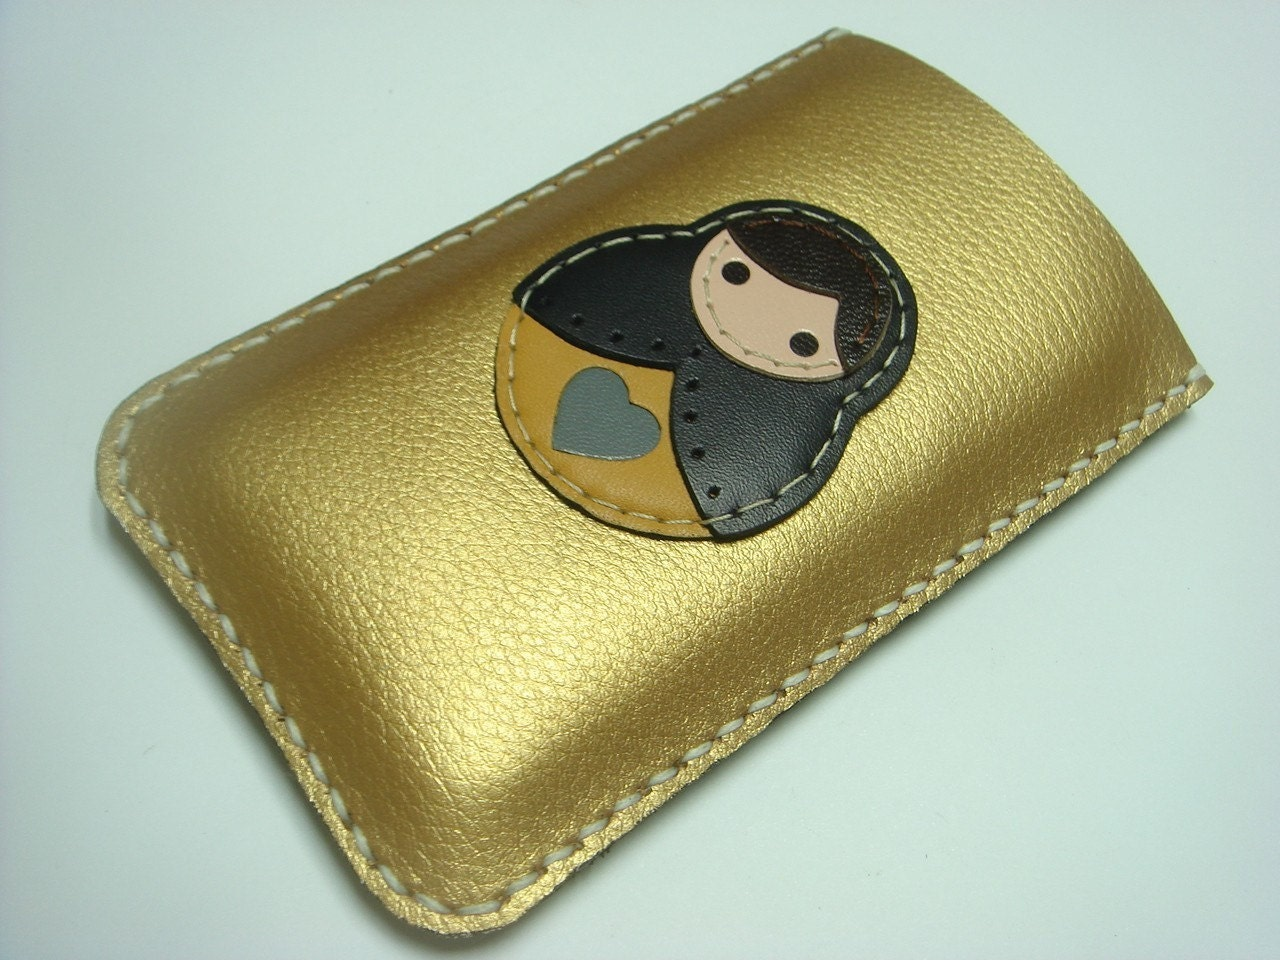 Lisa the Russian Doll Iphone Leather Case ( Gold / Black )